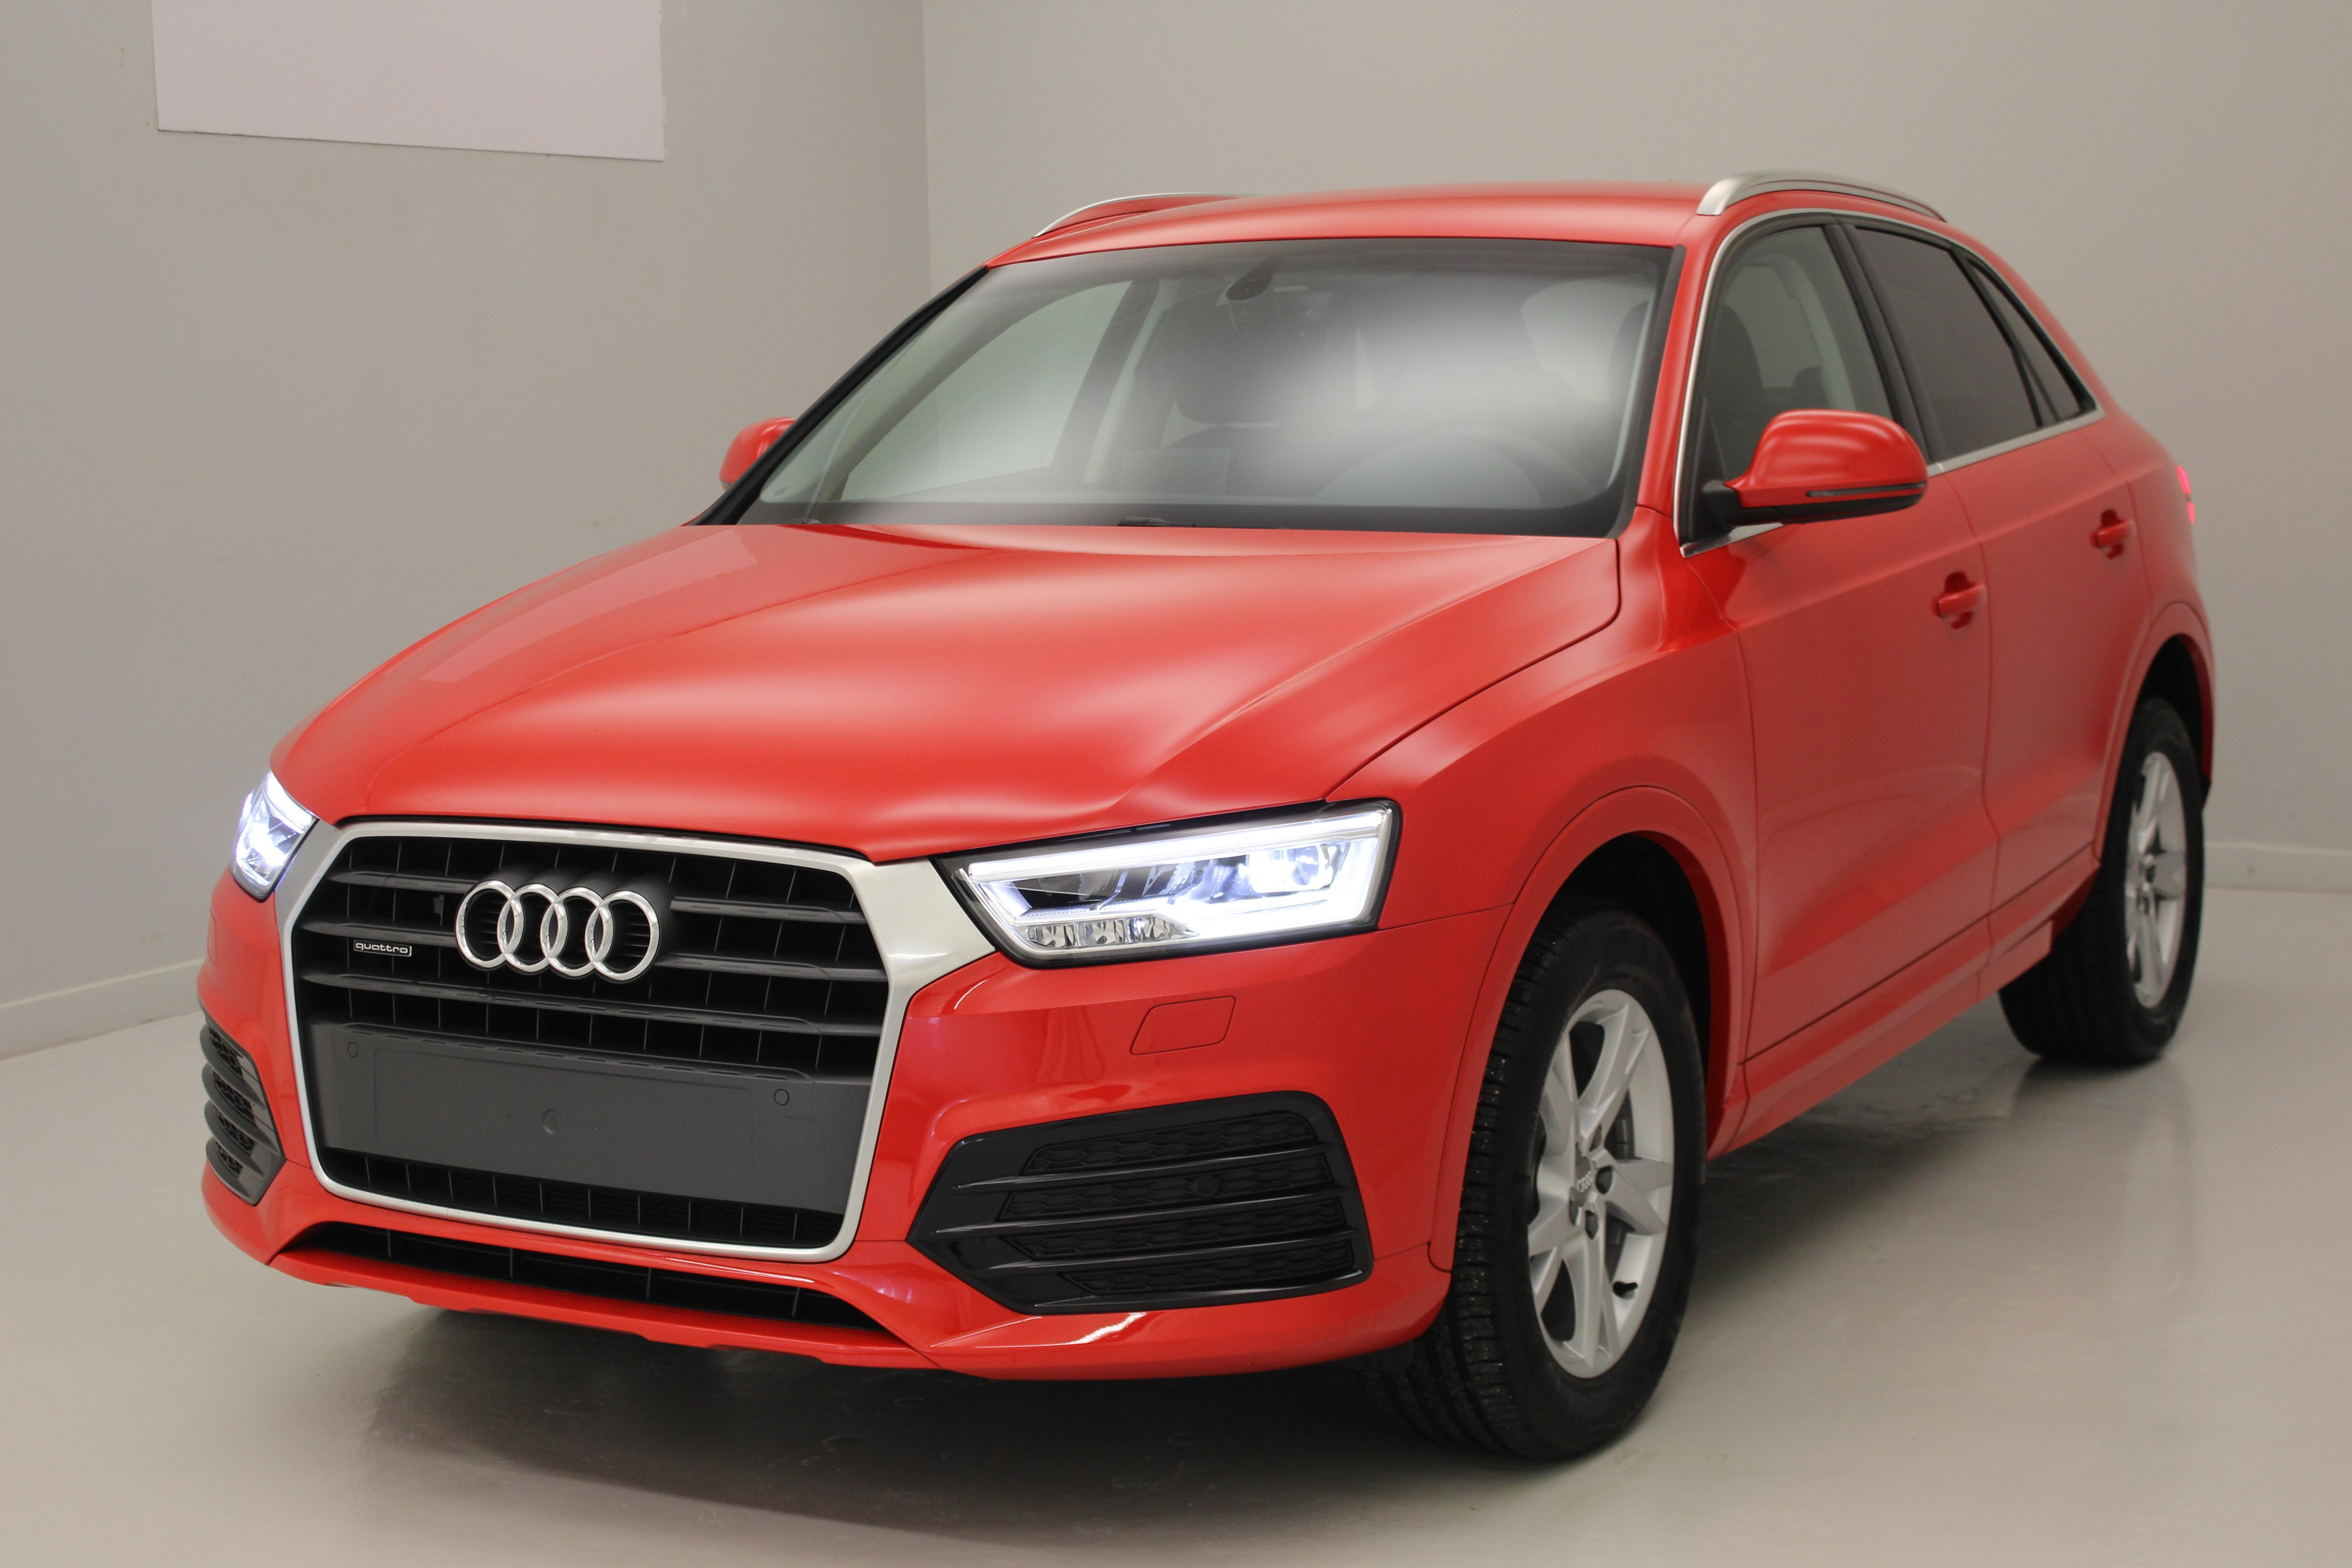 audi q3 2 0 tdi 150 ch s tronic 7 quattro ambiente rouge misano navigation phares full led. Black Bedroom Furniture Sets. Home Design Ideas